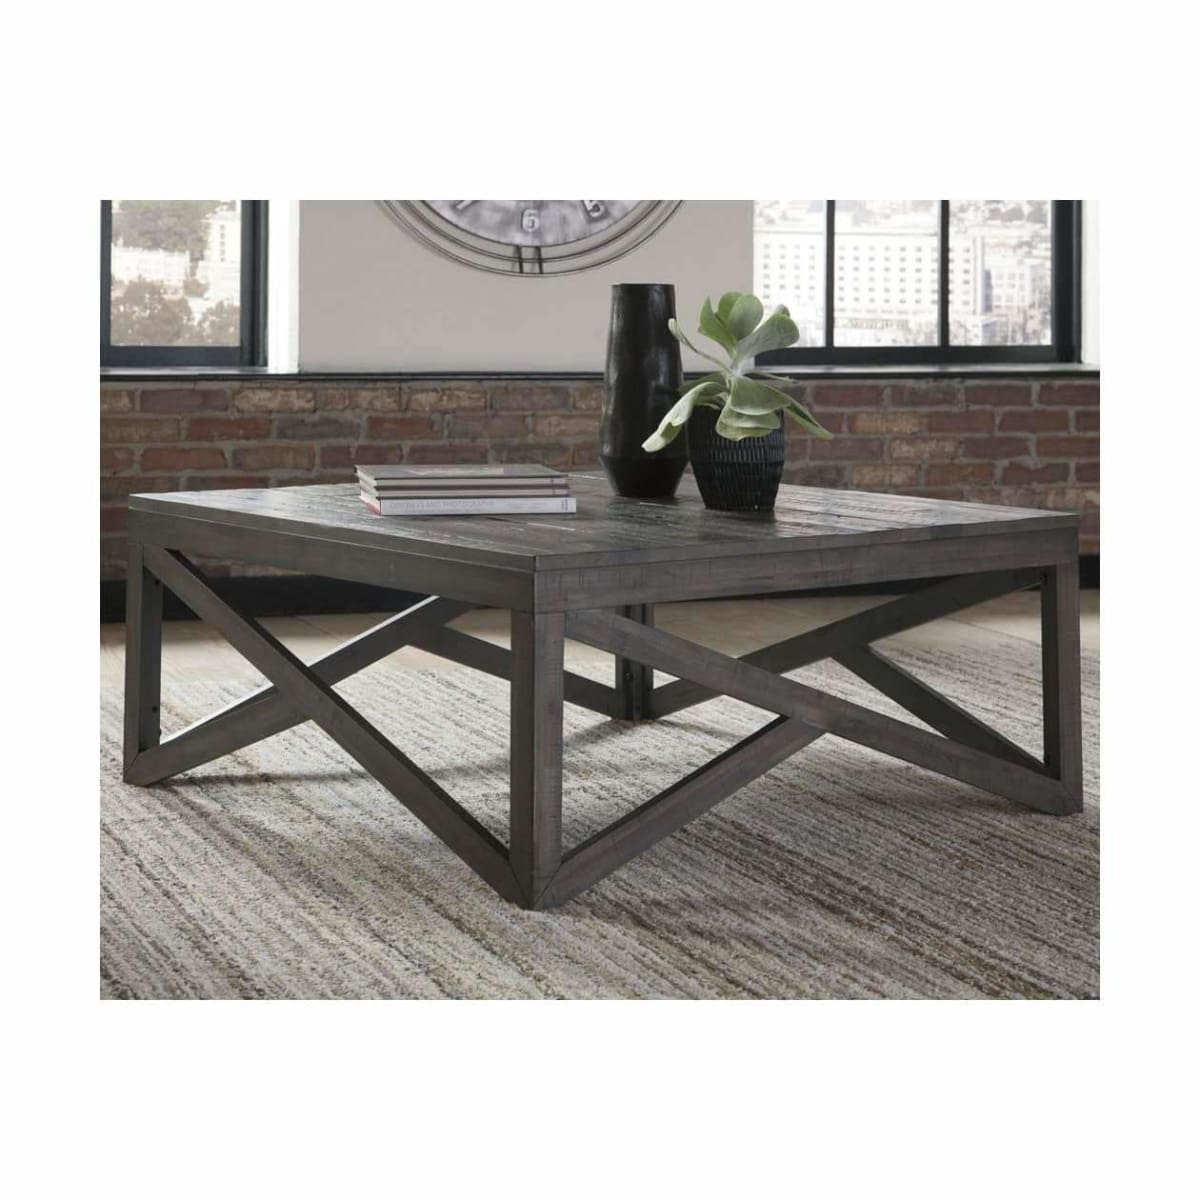 Haroflyn Coffee Table - COFFEE TABLE